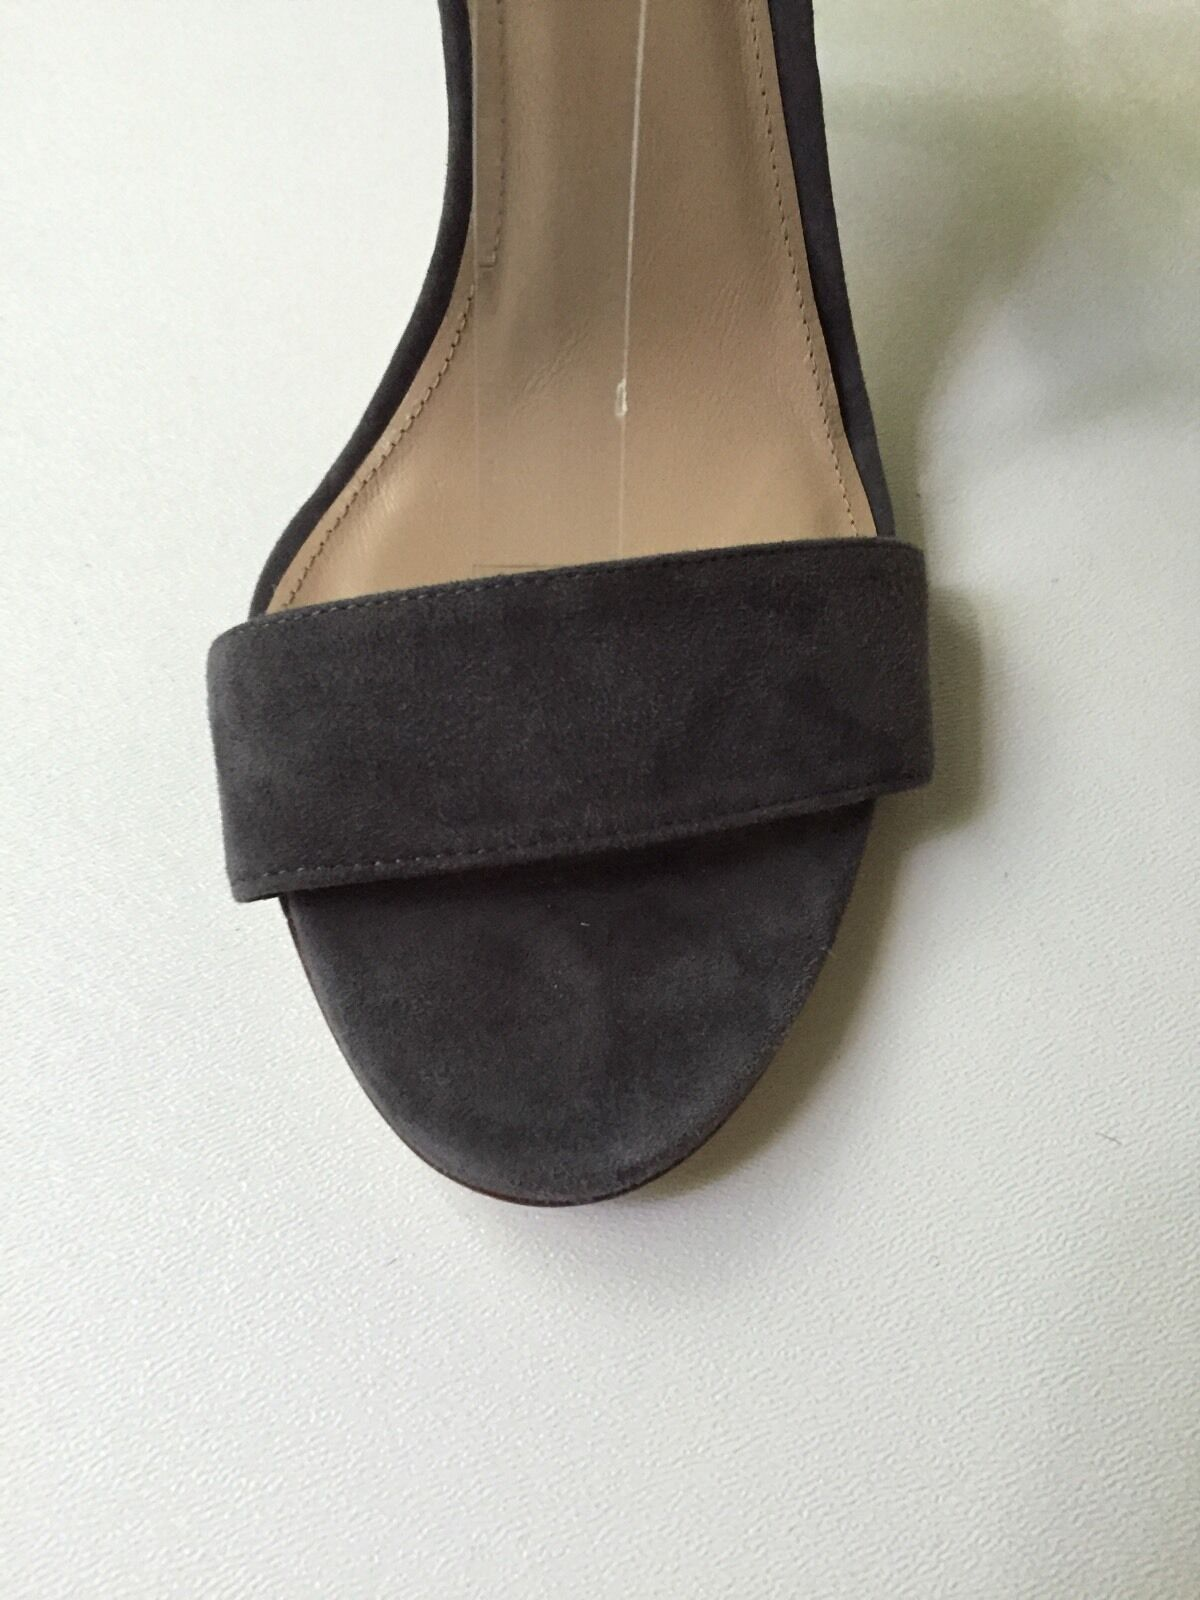 NEW J Crew Suede Ankle-Cuff Sandales Größe 9.5 Style# Heels A5285 278 New Heels Style# 70fbc8